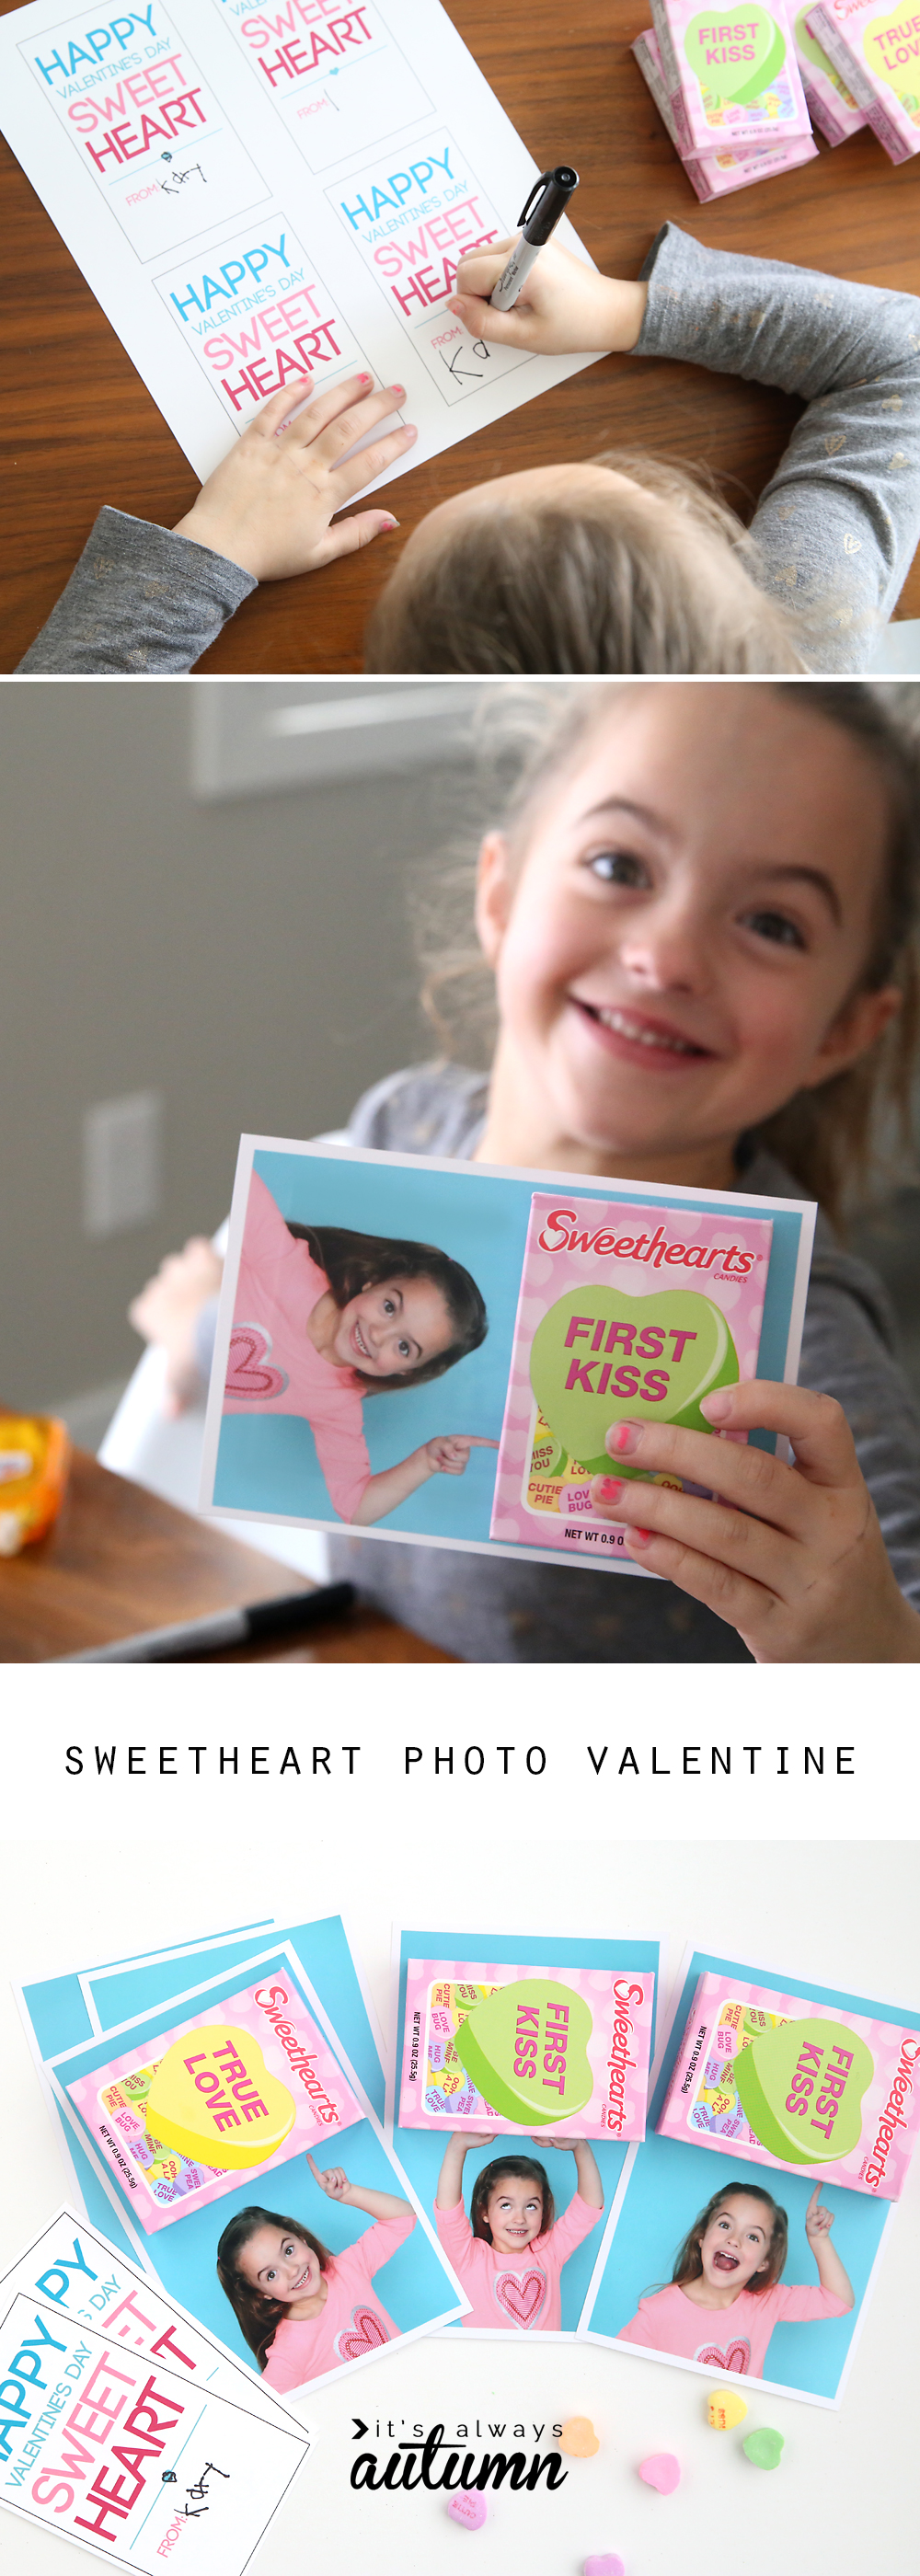 What a fun idea! Take a photo of your child to make it look like she's holding a box of Sweethearts for a fun DIY Valentine's Day card. Easy instructions and free printable included.